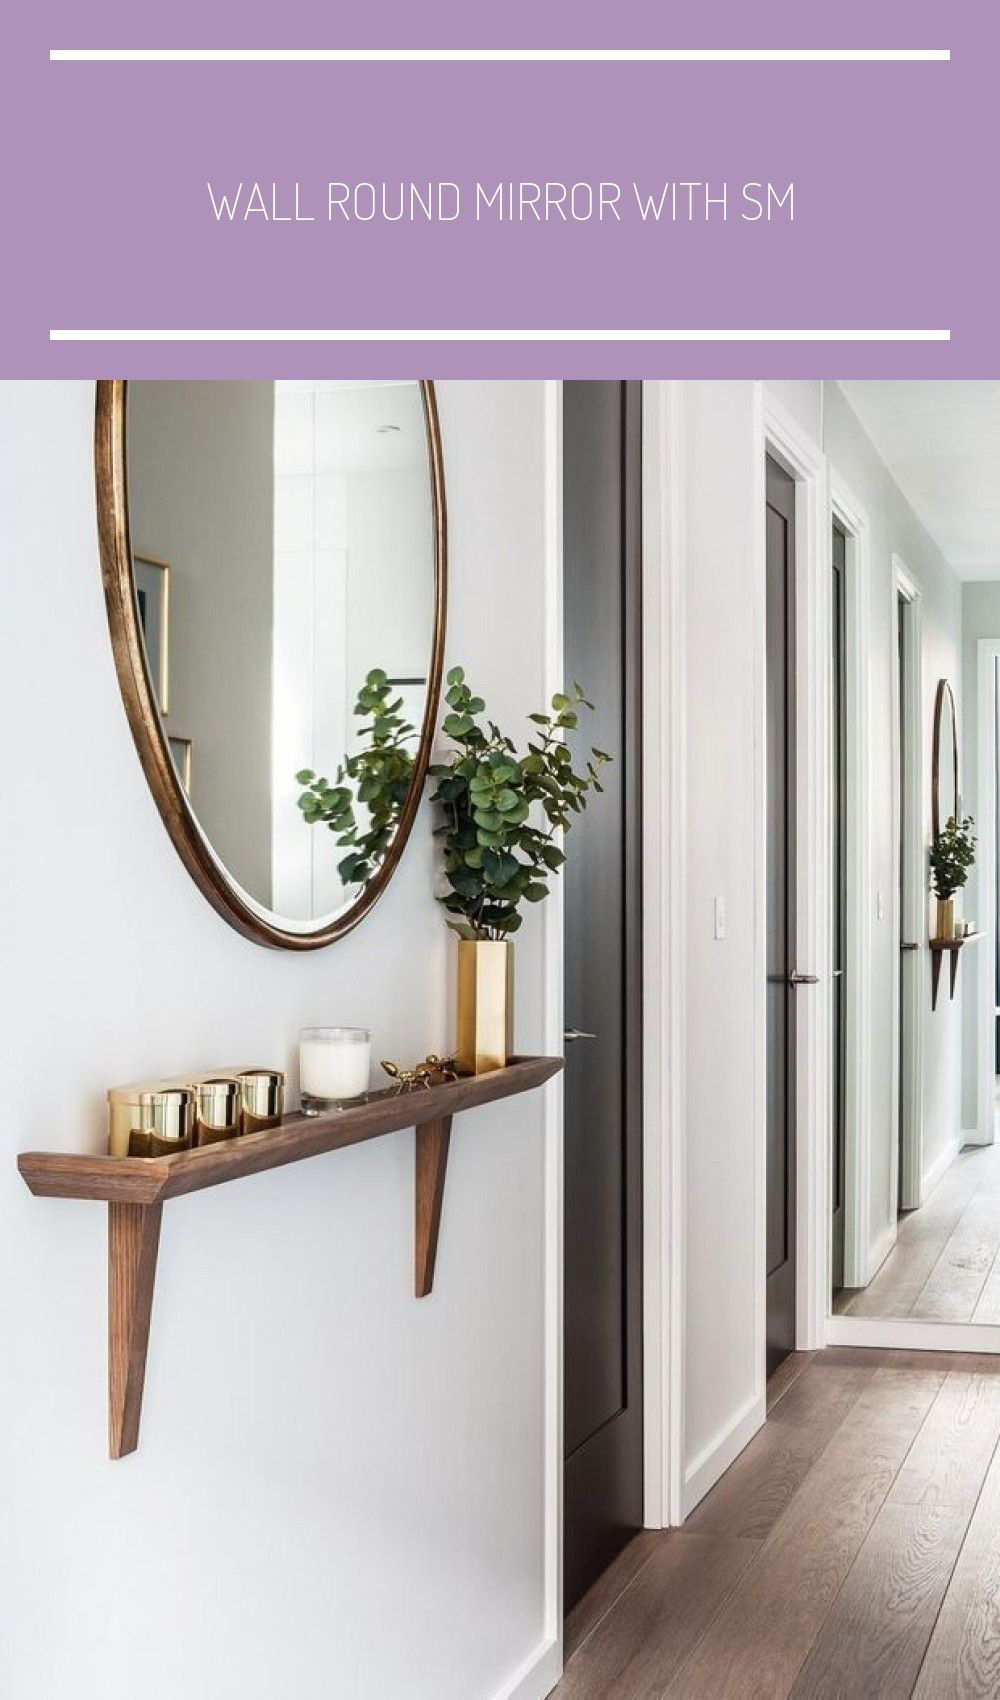 Wall Round Mirror With Small Shelf Feng Shui Decor Mirror How To Feng Shui Your Entryway Eingangsbereich Haus Modern In 2020 Small Hallways Hallway Decorating Decor